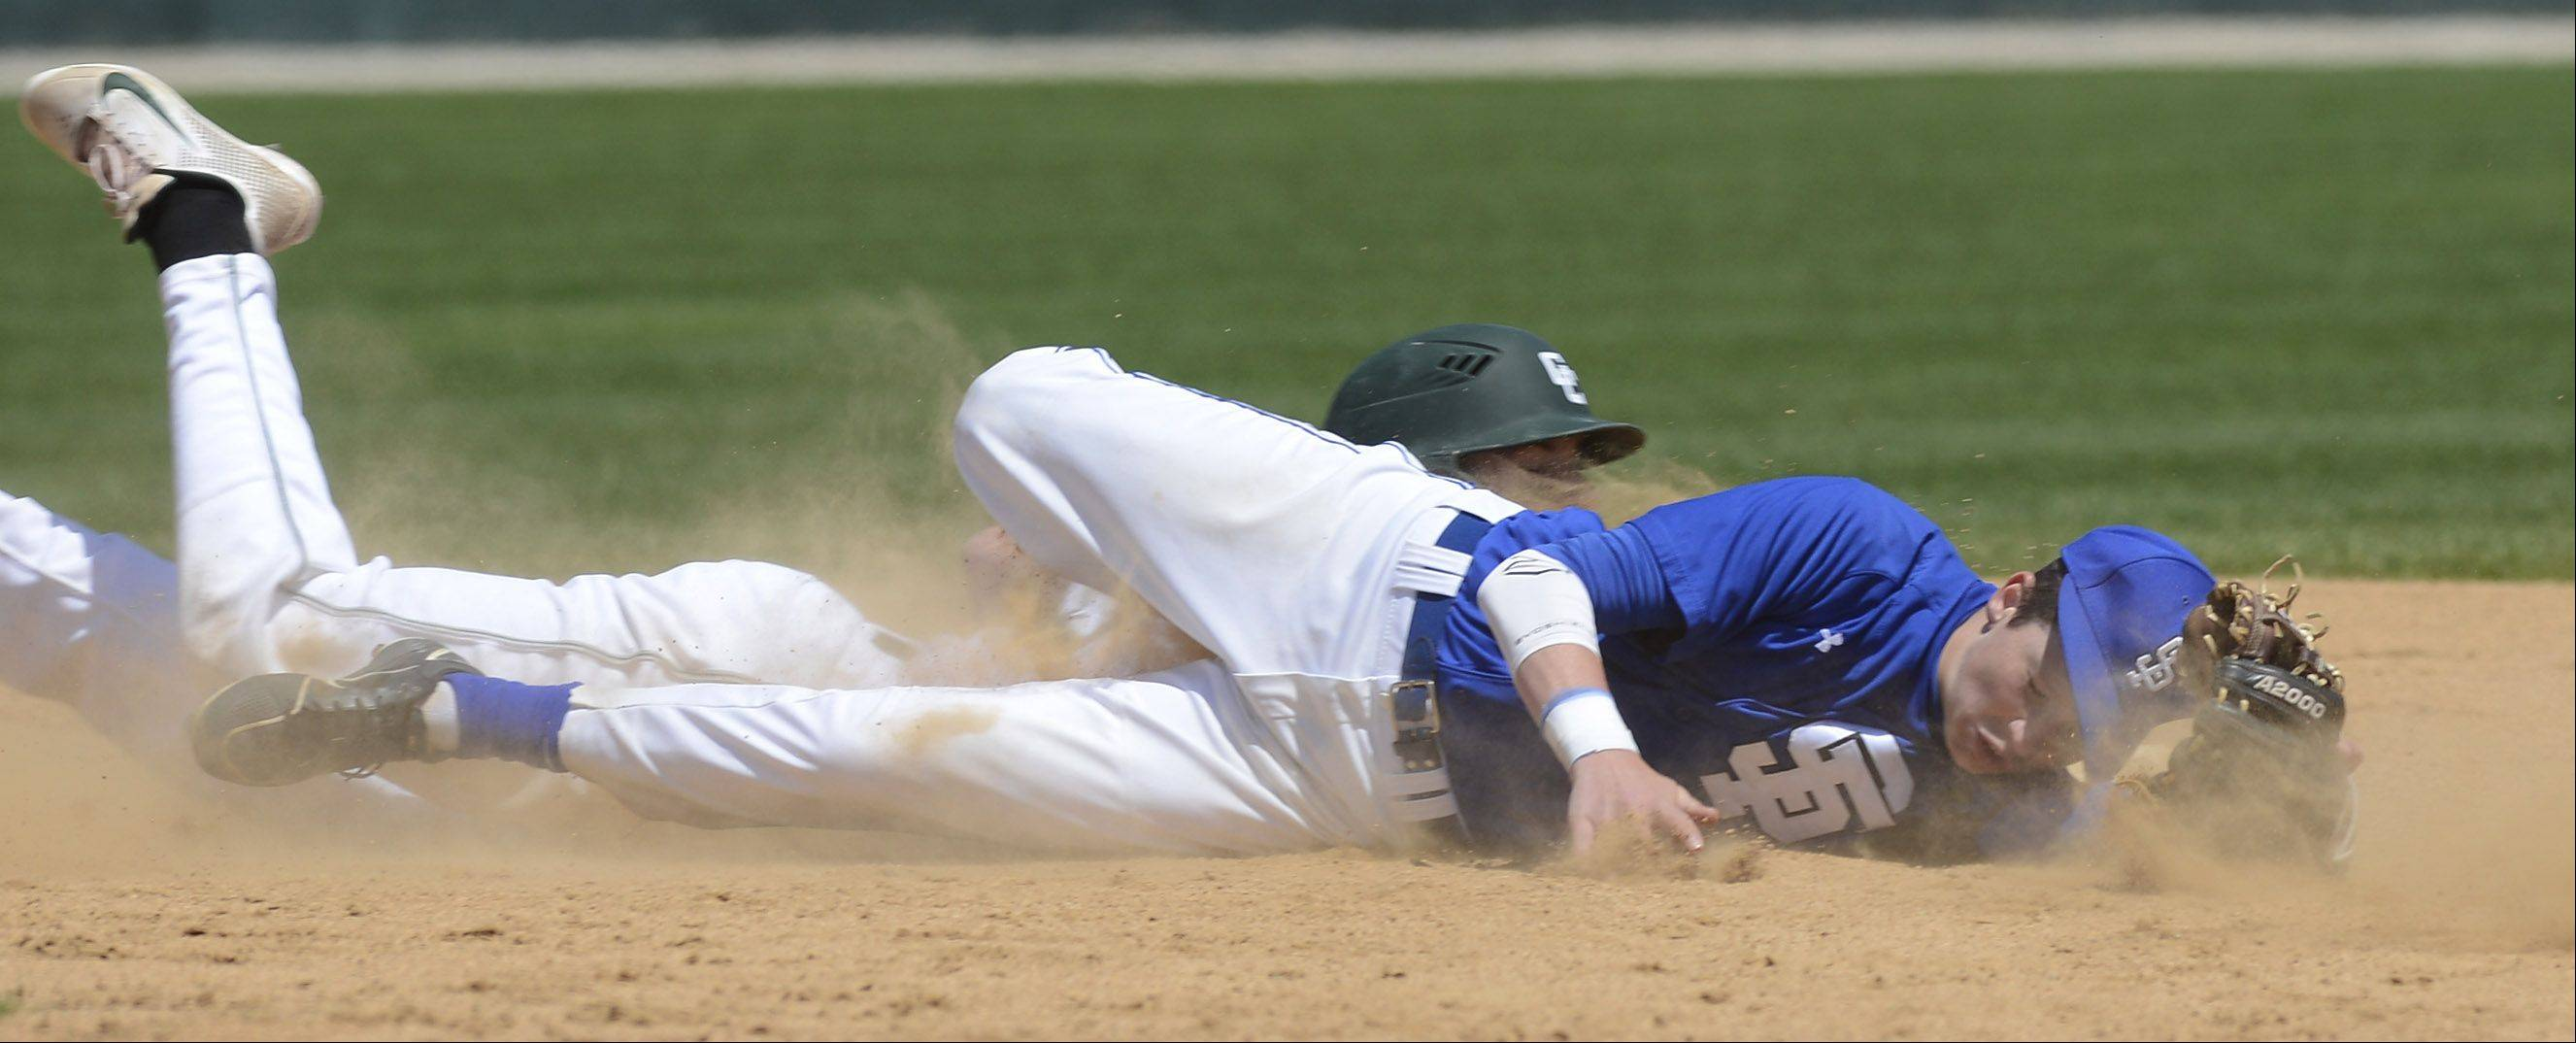 St. Francis second baseman Jack Ciombor lands on the dirt on a wild pickoff attempt on Grayslake Central base runner Matt Loeffl during the Class 3A state baseball semifinal at Silver Cross Field in Joliet Friday.